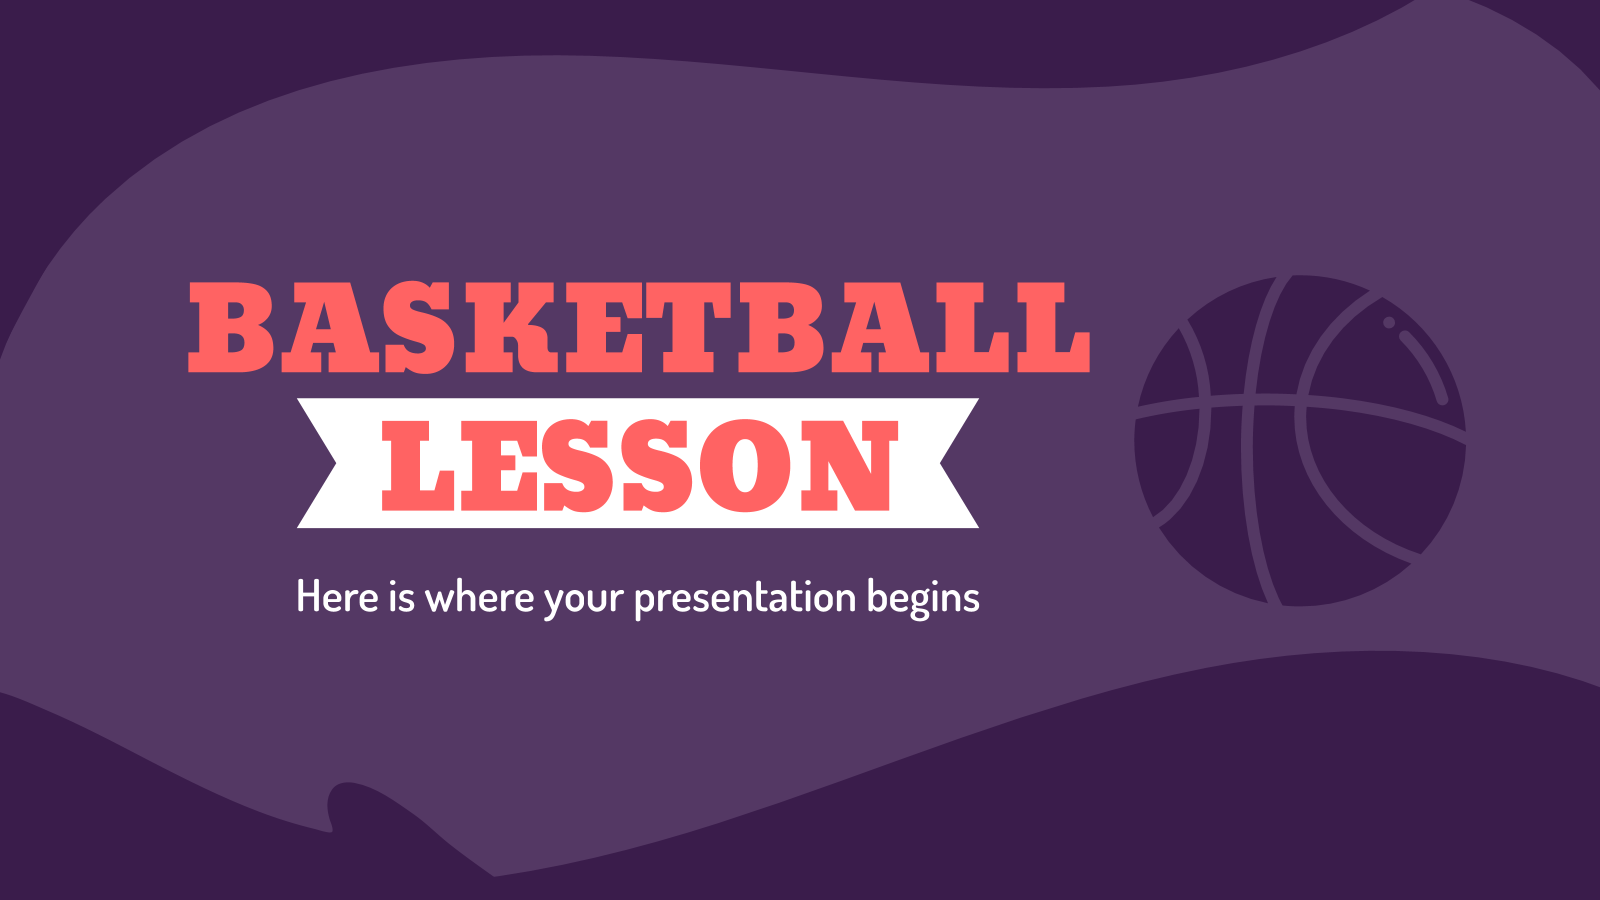 Basketball Lesson presentation template